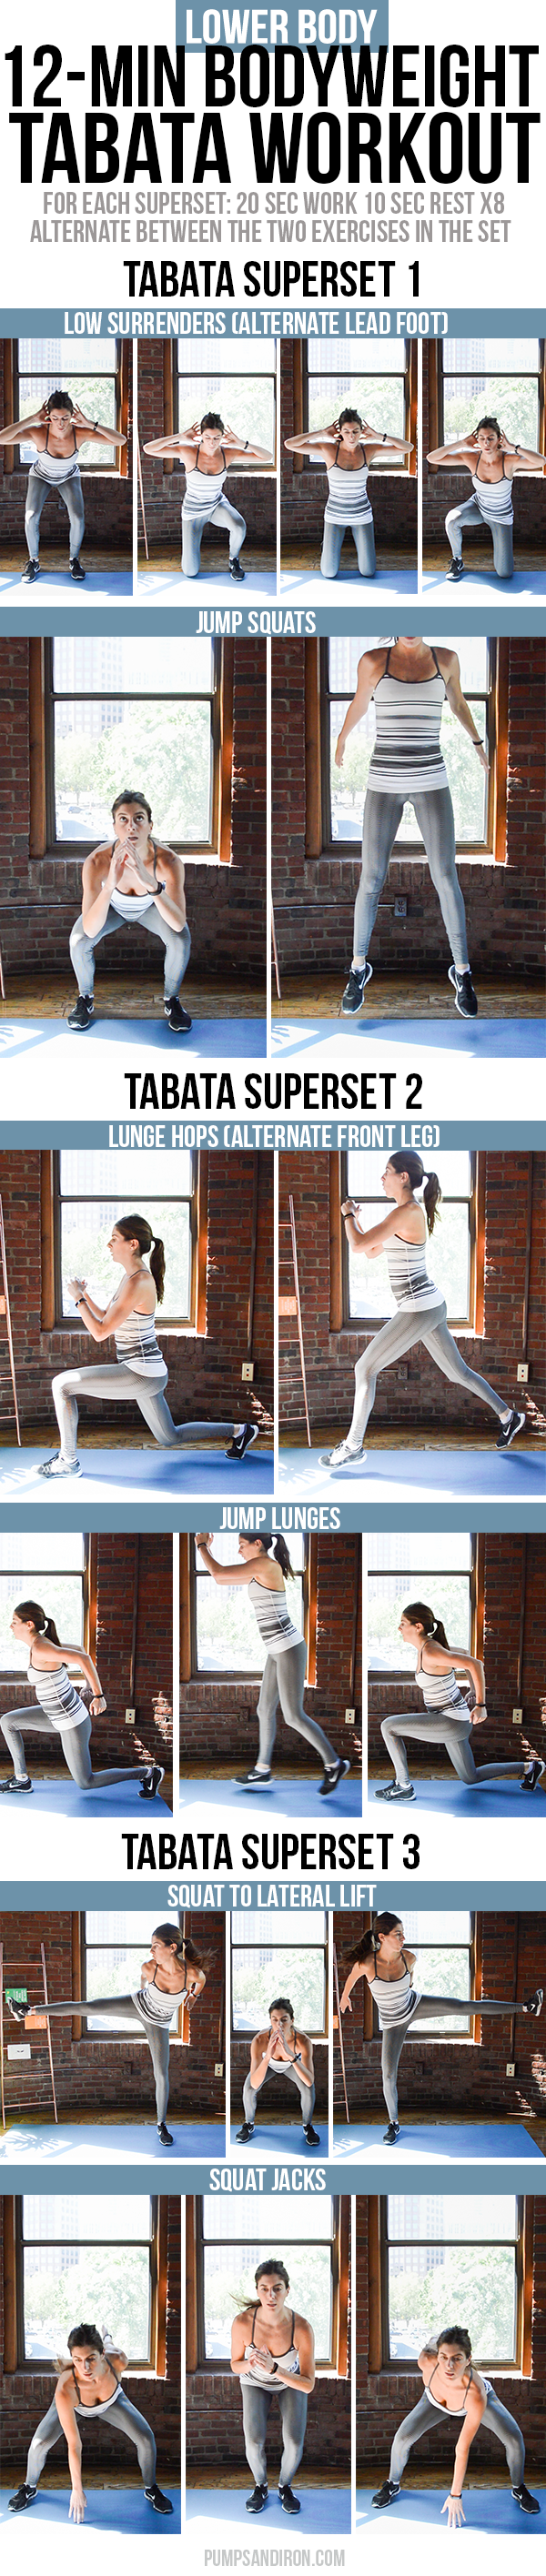 12 Minute Bodyweight Tabata Workout For Legs Butt This Is Broken